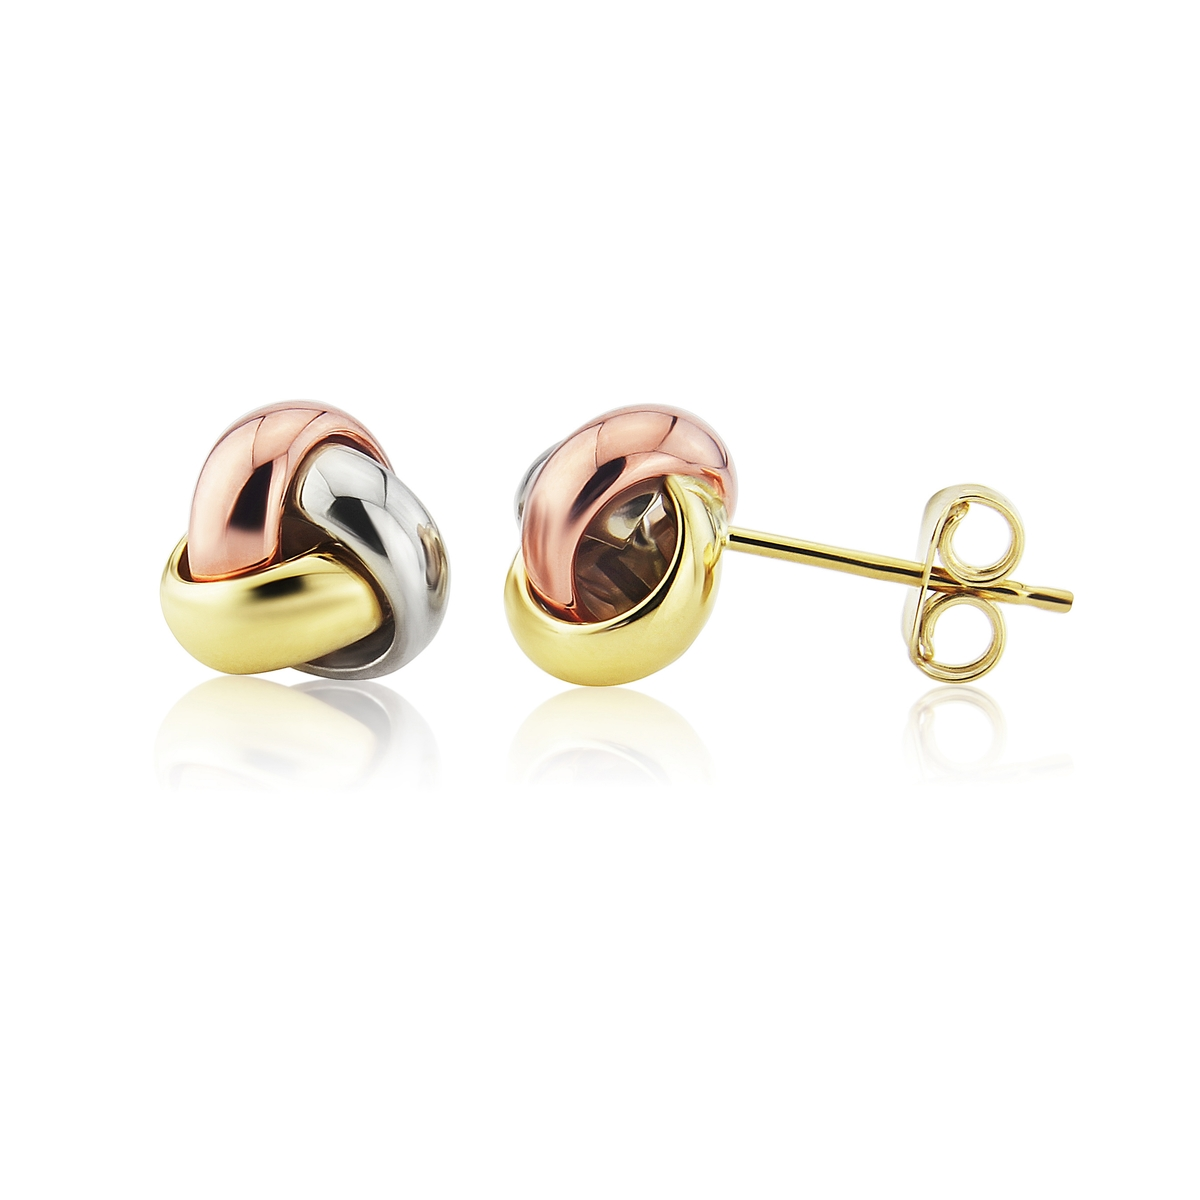 16c98e31a 9ct 3 Colour Gold Knot Stud Earrings - TB Mitchell - Earrings - TB ...